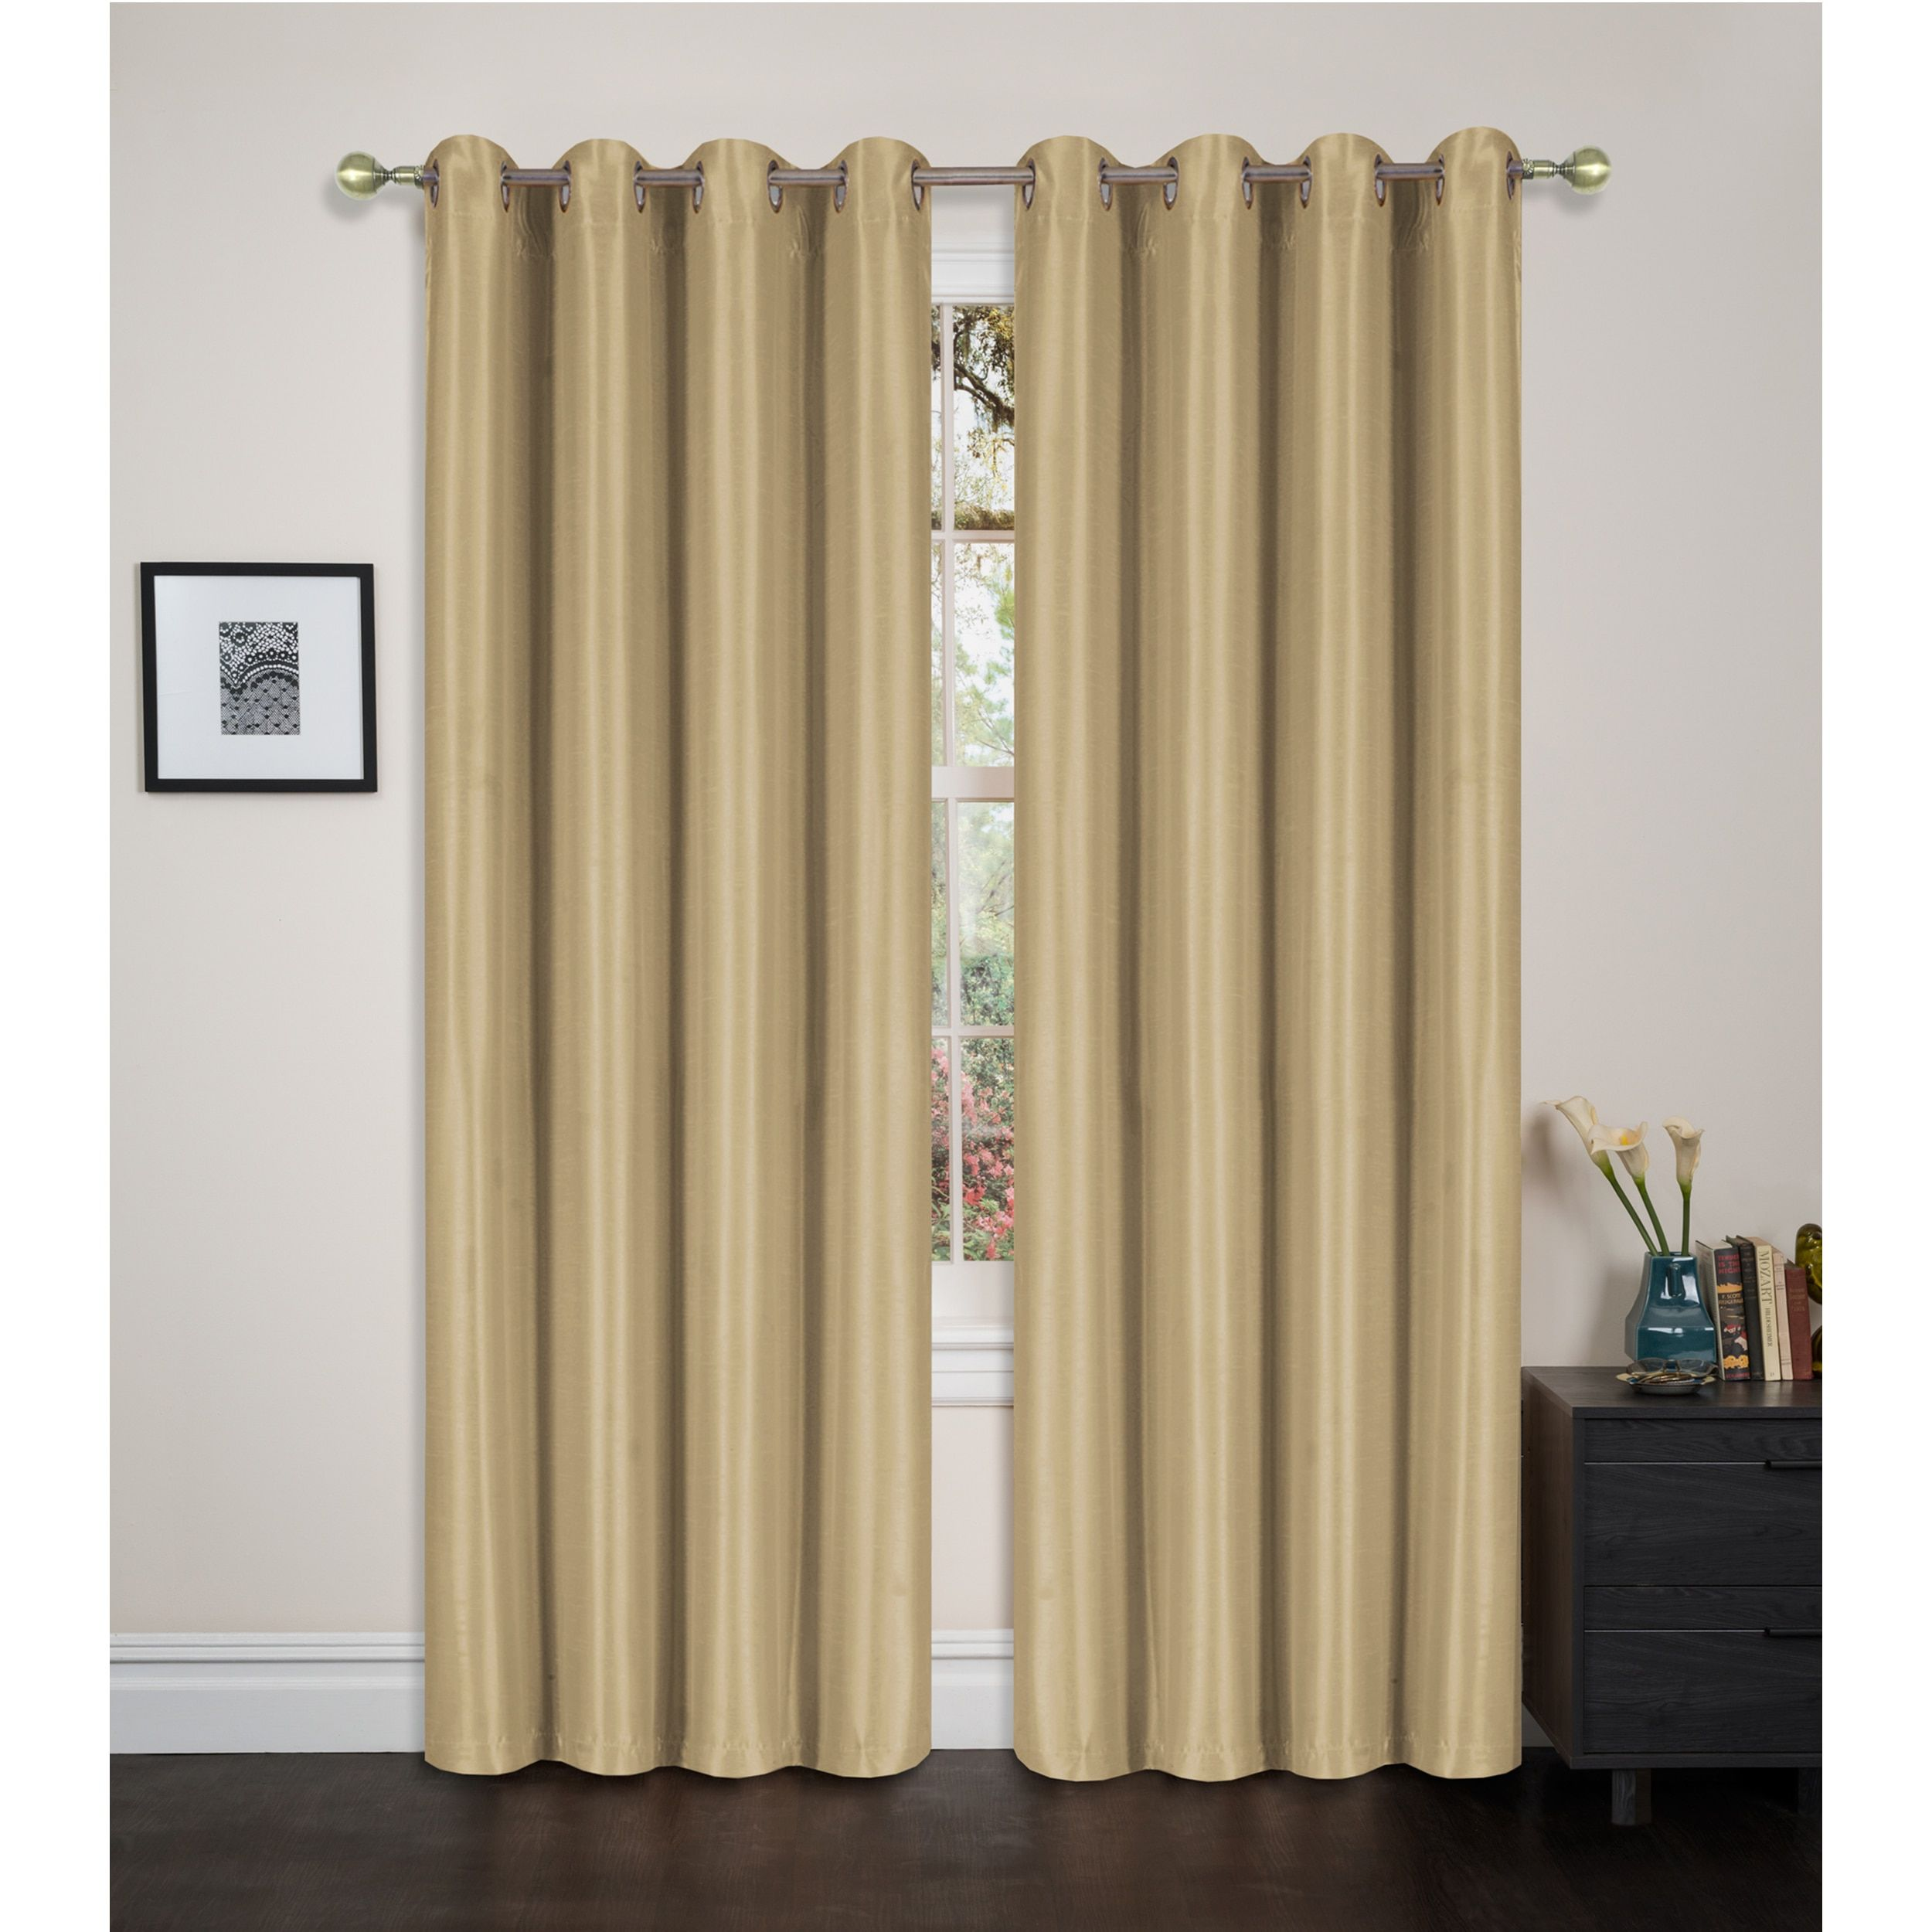 by p eclipse of fmt single navy panel window wid and blackout picture curtain qlt hei